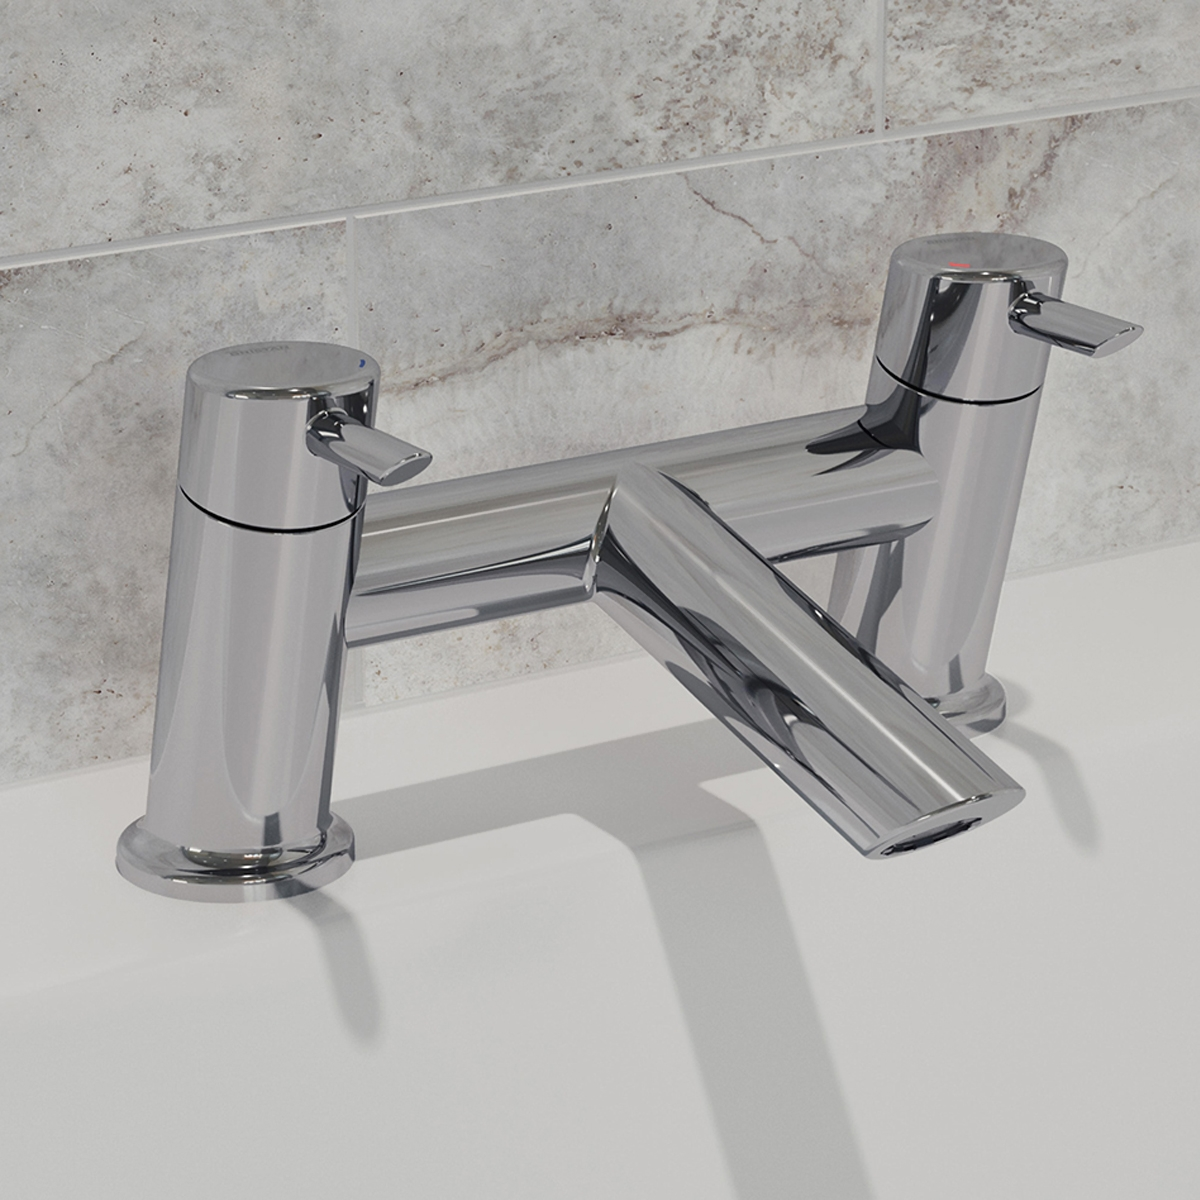 Bristan Acute Bath Filler Tap Pillar Mounted - Chrome